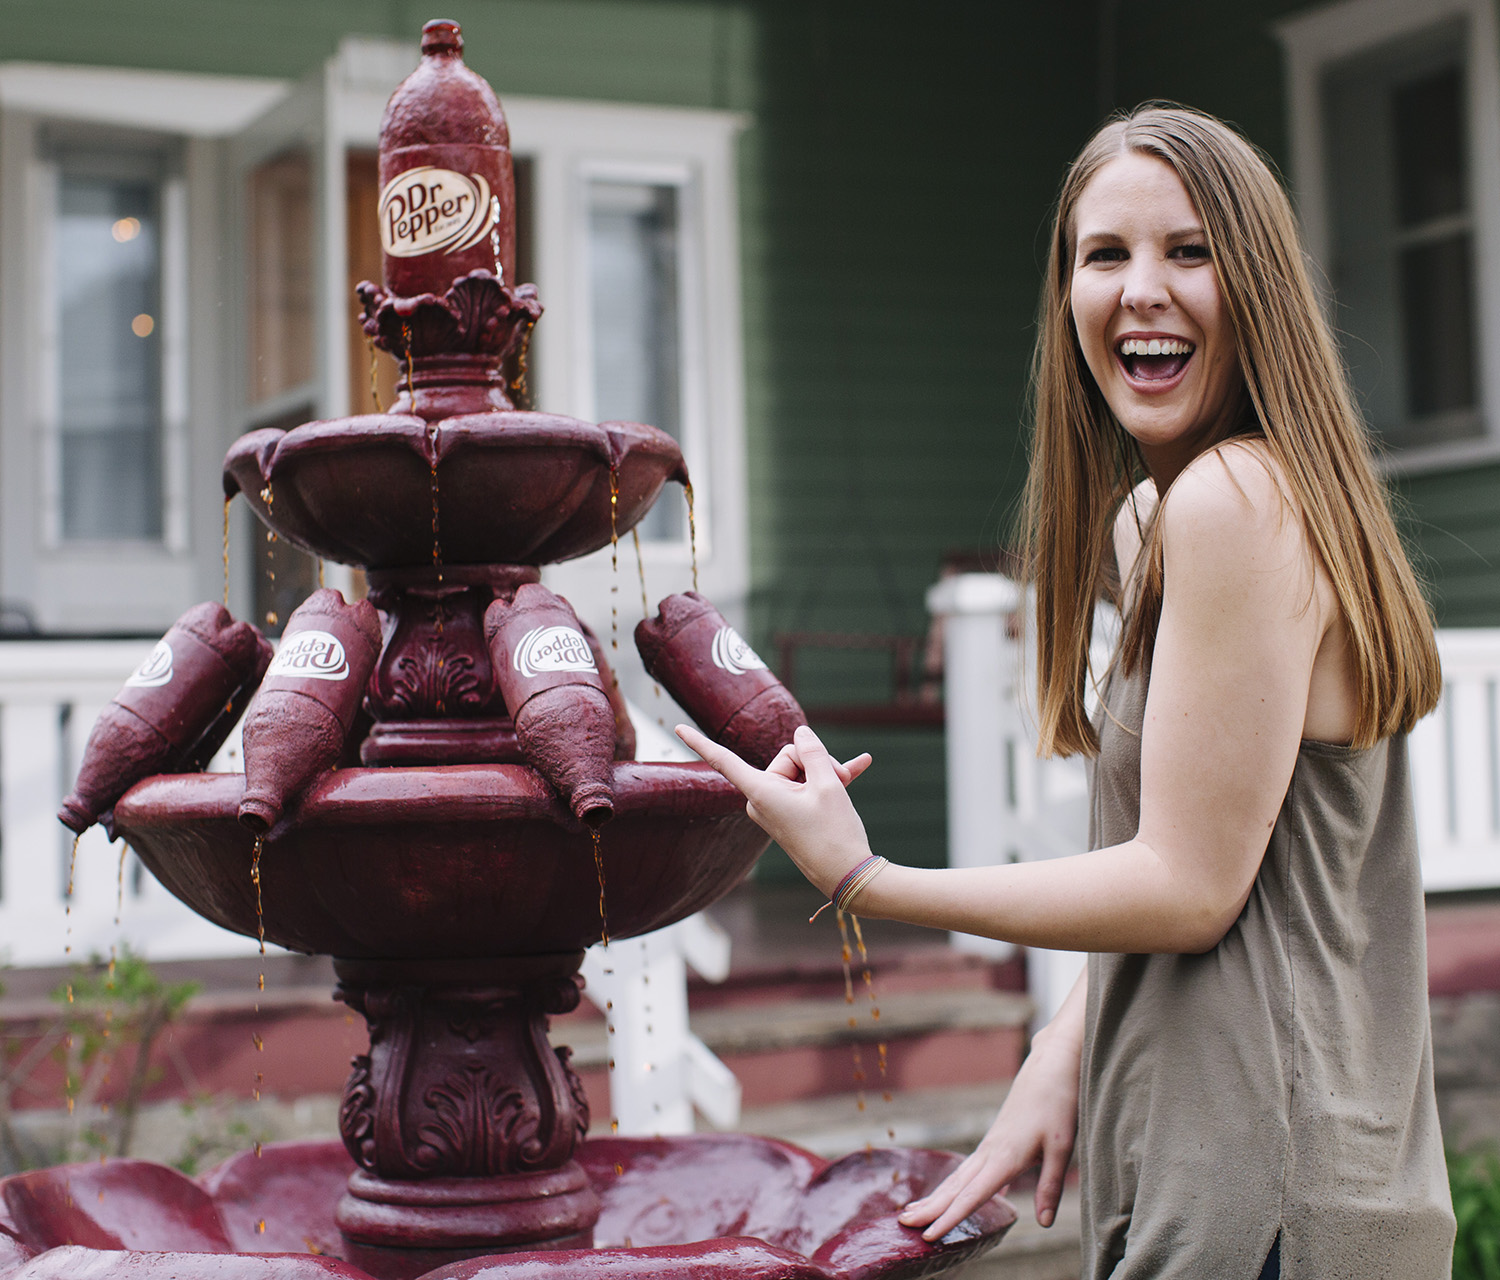 College student rewarded with life-size Dr Pepper fountain for front yard